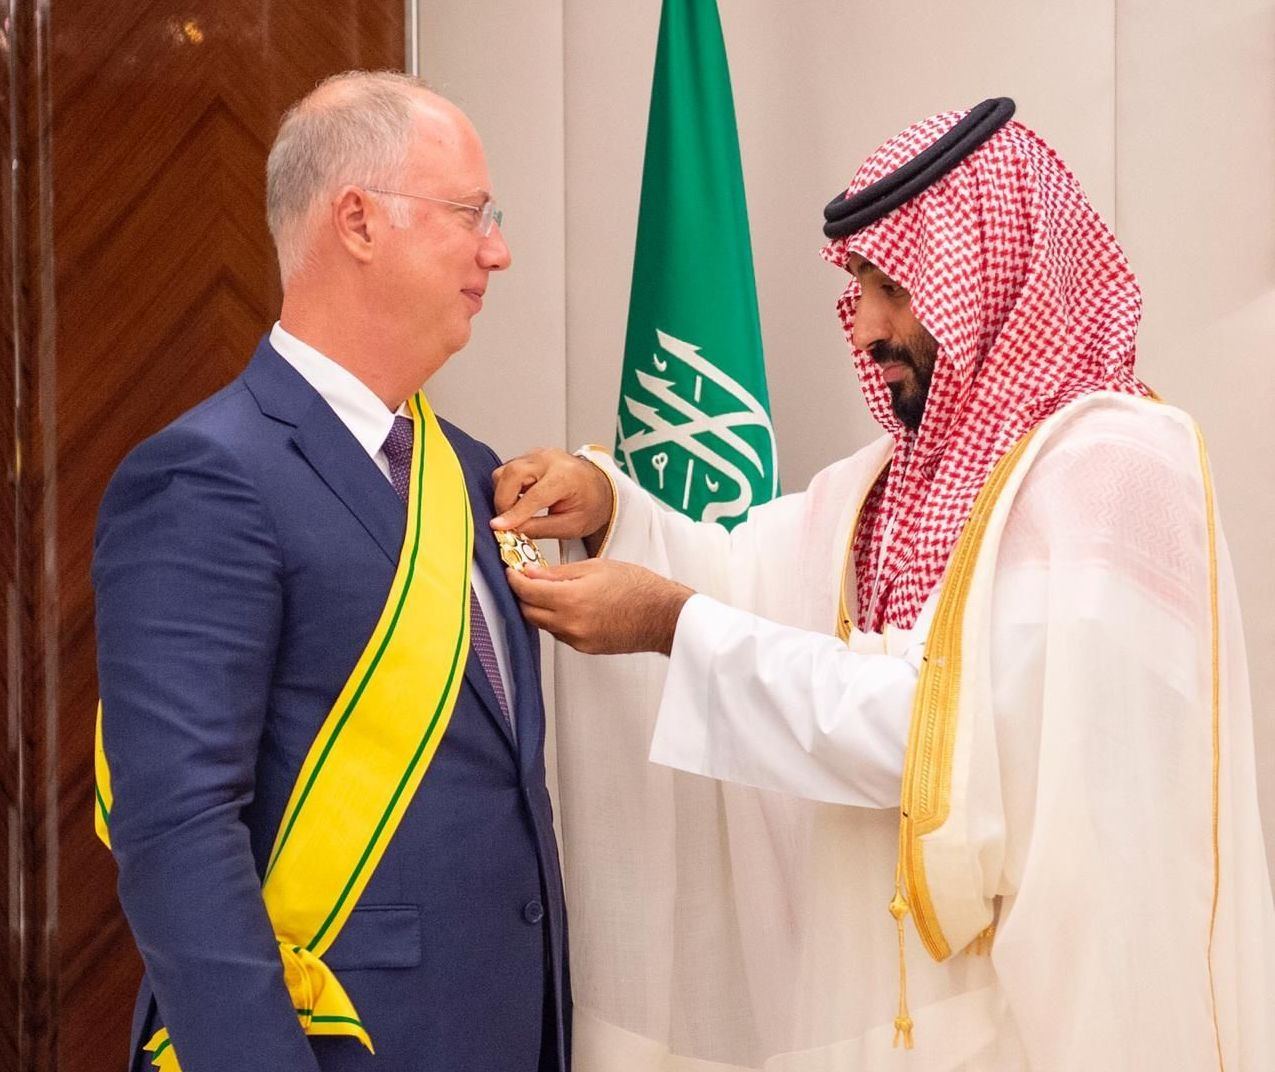 Russian Direct Investment Fund (RDIF) CEO, Kirill Dmitriev awarded by Saudi Crown Prince